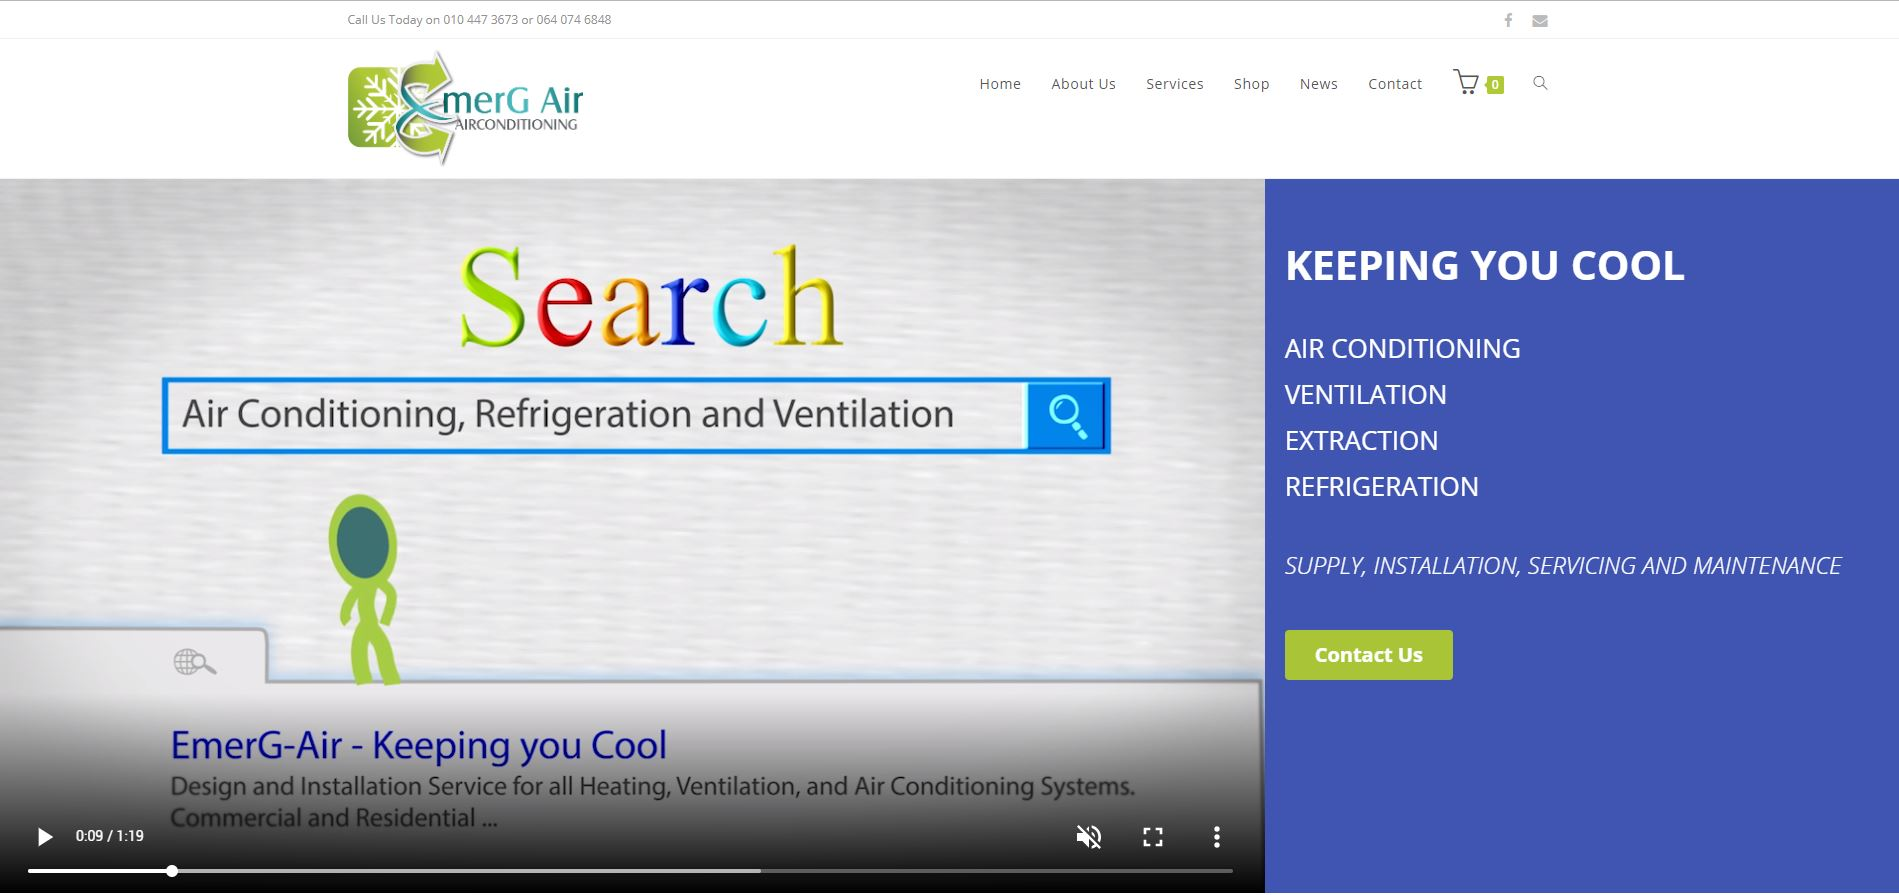 EmerG Air has a new website.